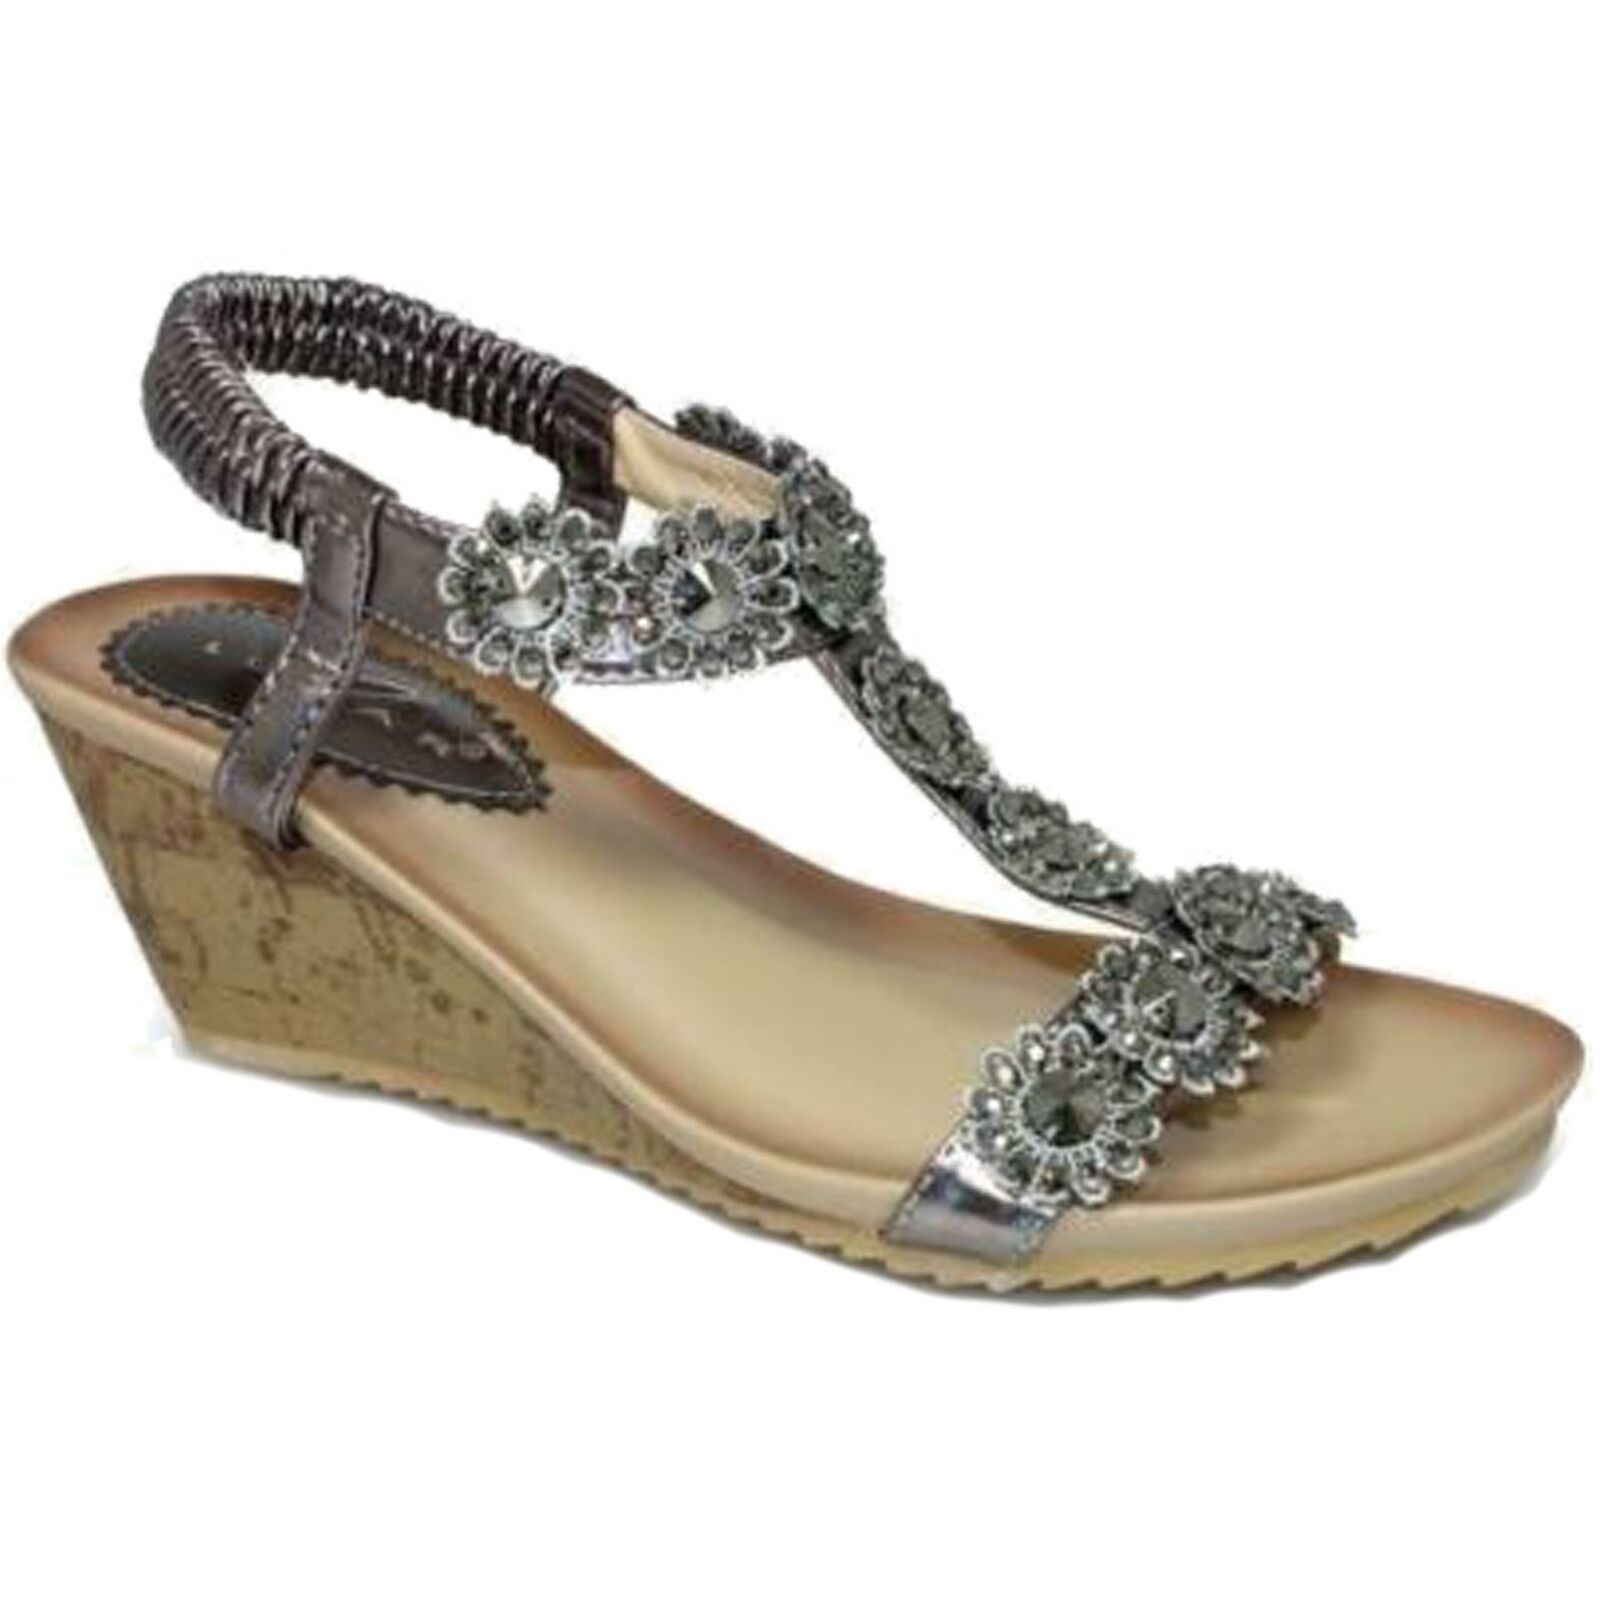 JLH780 Cally Women's Comfortable T-Strap Floral Flower Elasticated Wedge Sandals